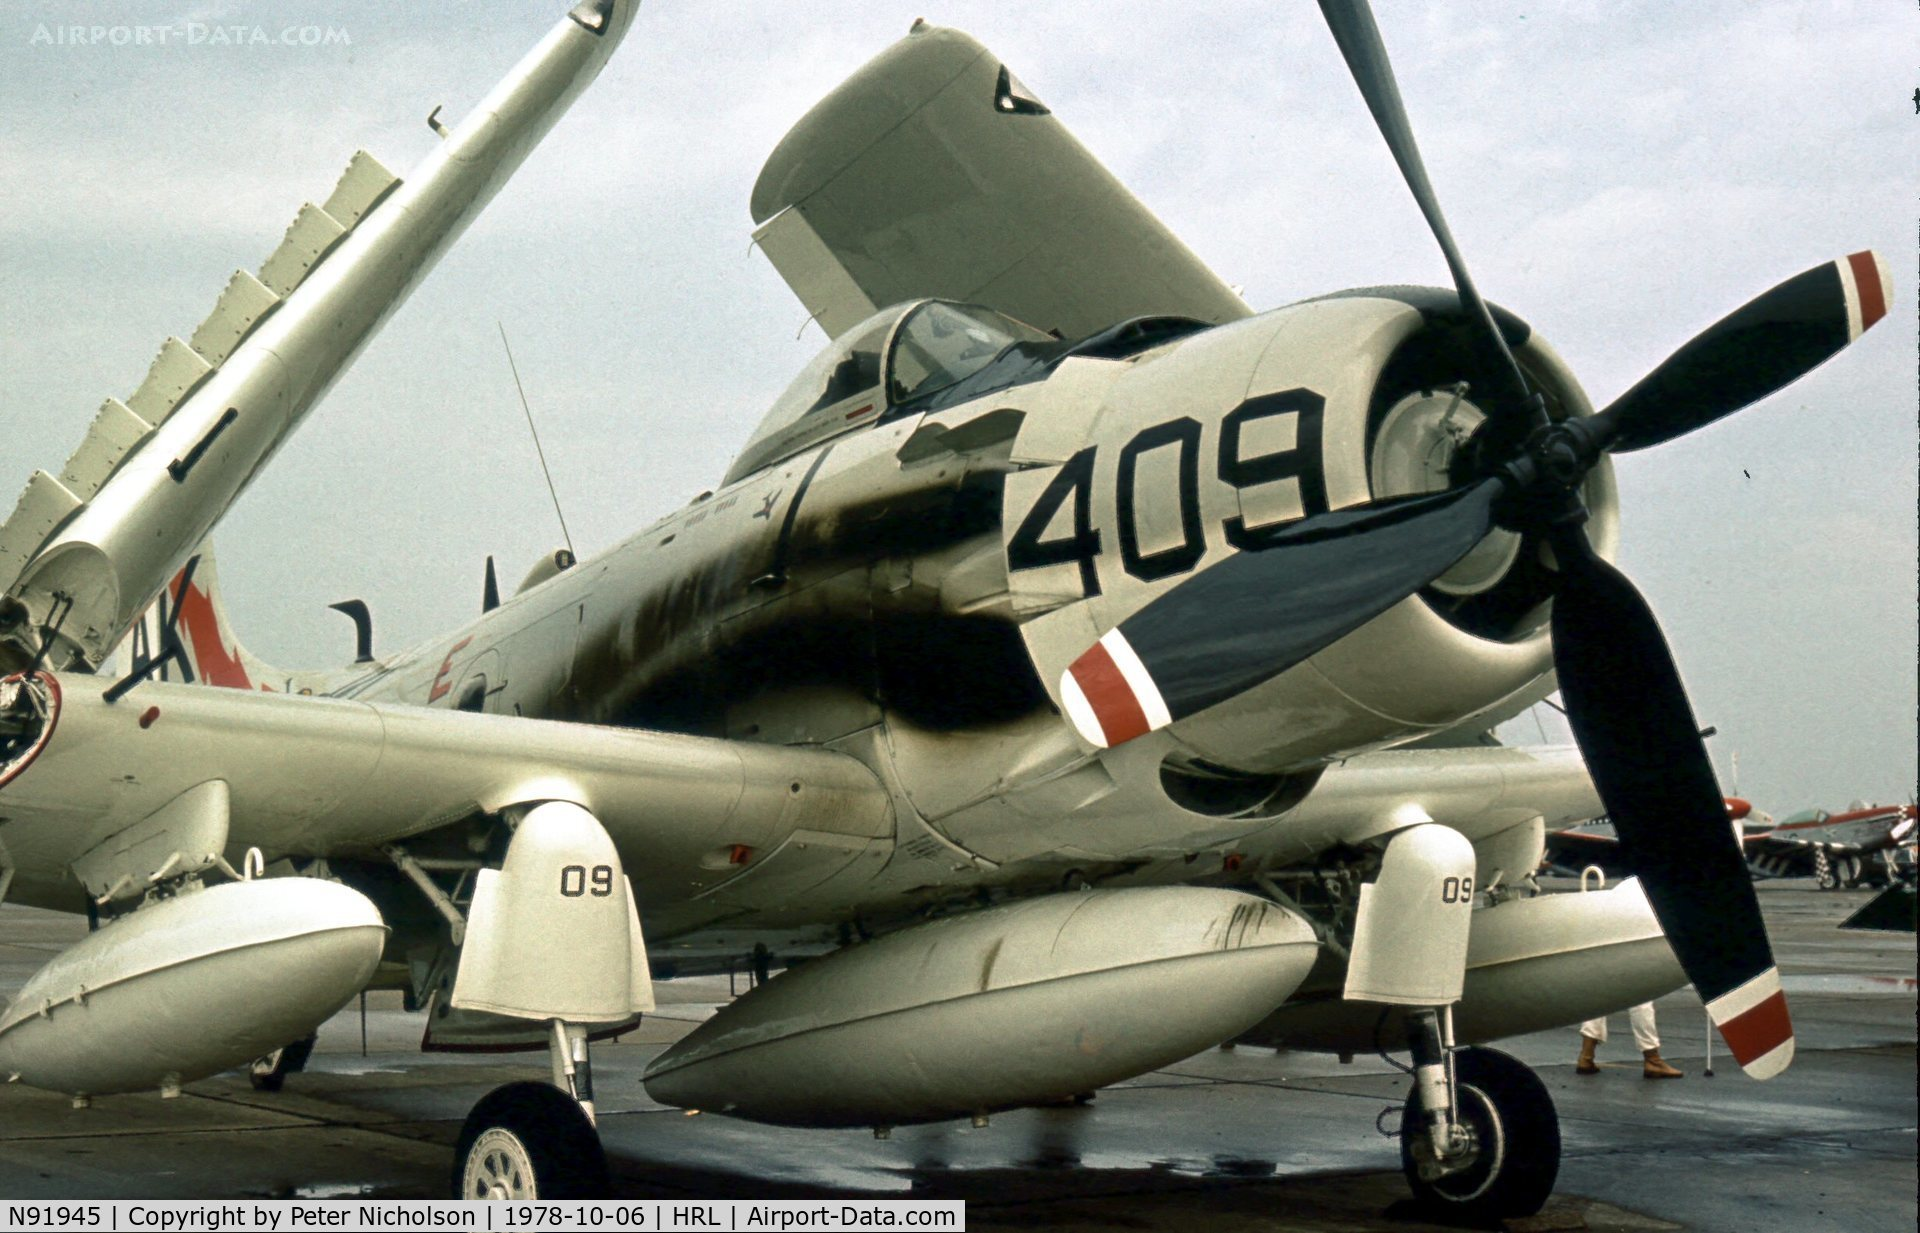 N91945, 1952 Douglas AD4-DW C/N 126882-SF85, As NX91945, this Skyraider was marked as Bu.137583 of VA-176 at the Confederate Air Force's 1978 Airshow at Harlingen.